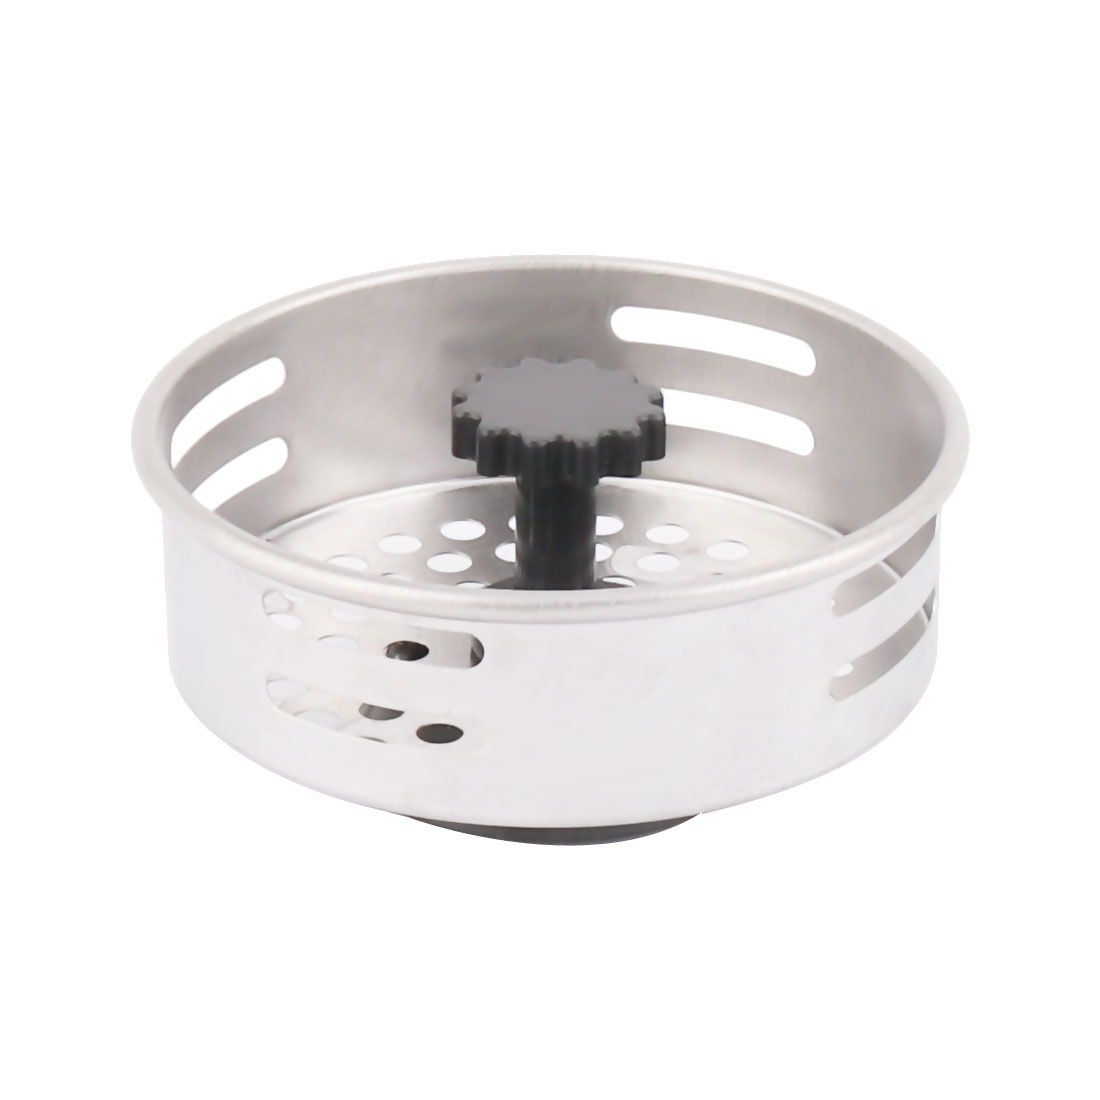 Home Kitchen Water Sink Basin Residue Mesh Strainer Filter Stopper 8cm Dia